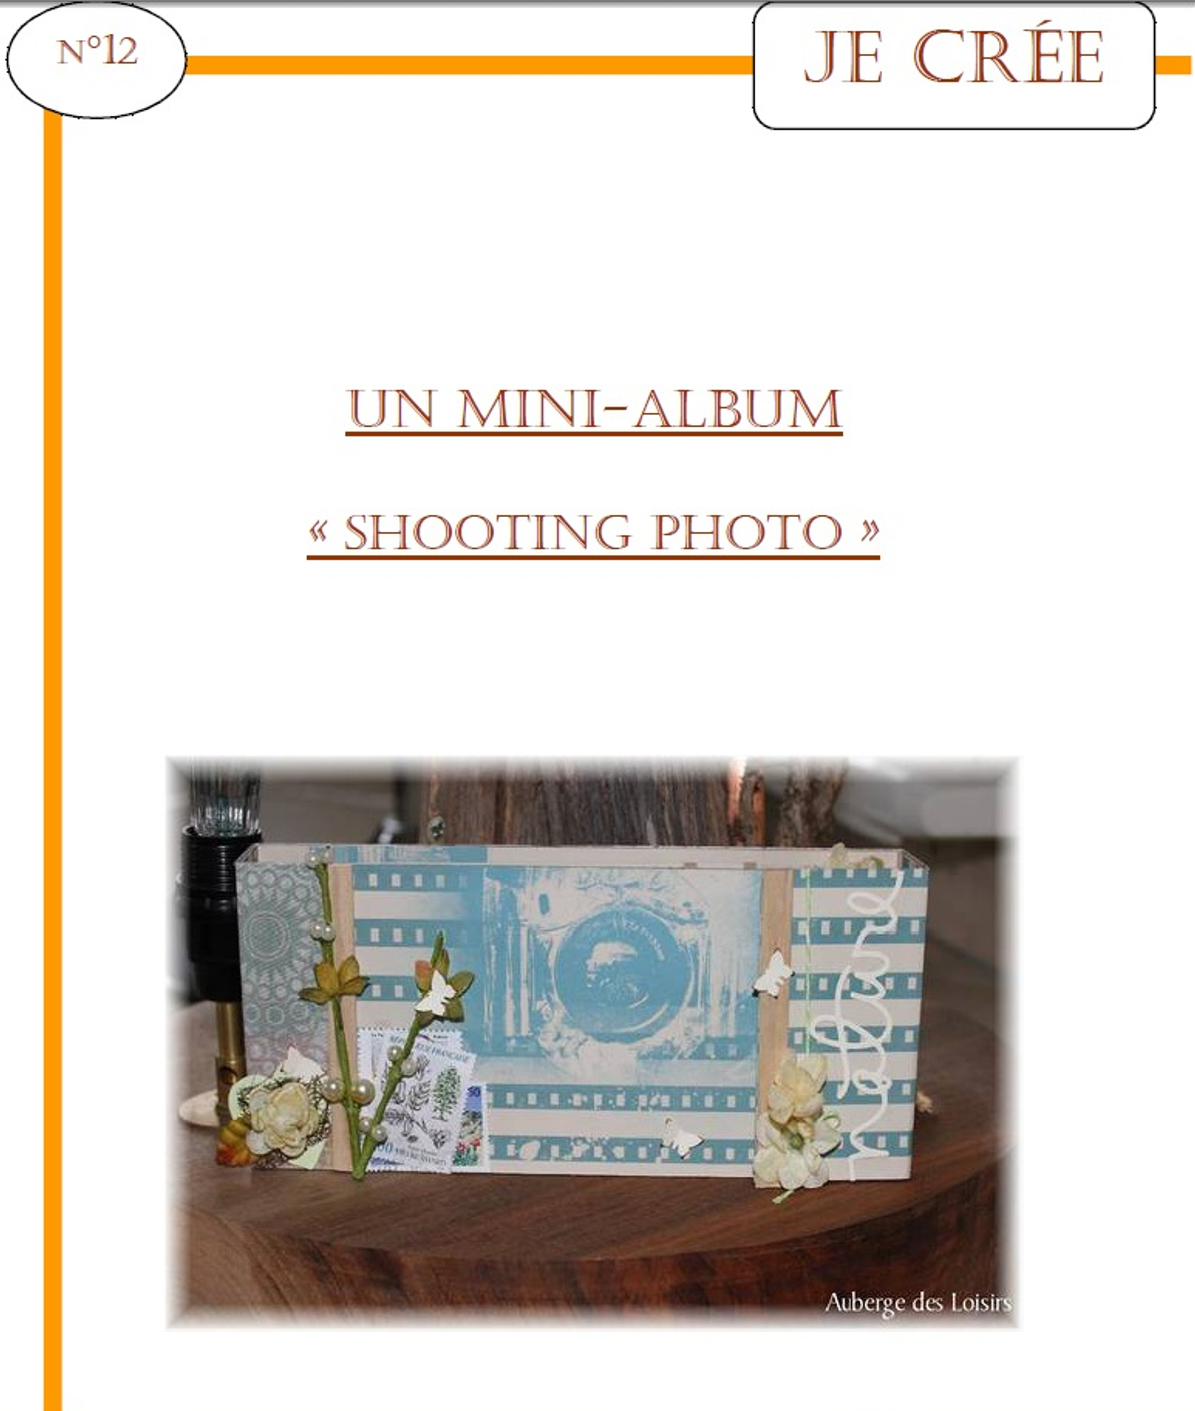 http://www.aubergedesloisirs.com/fiches-creatives/1041-fiche-je-cree-n12-mini-album-shooting-photo.html